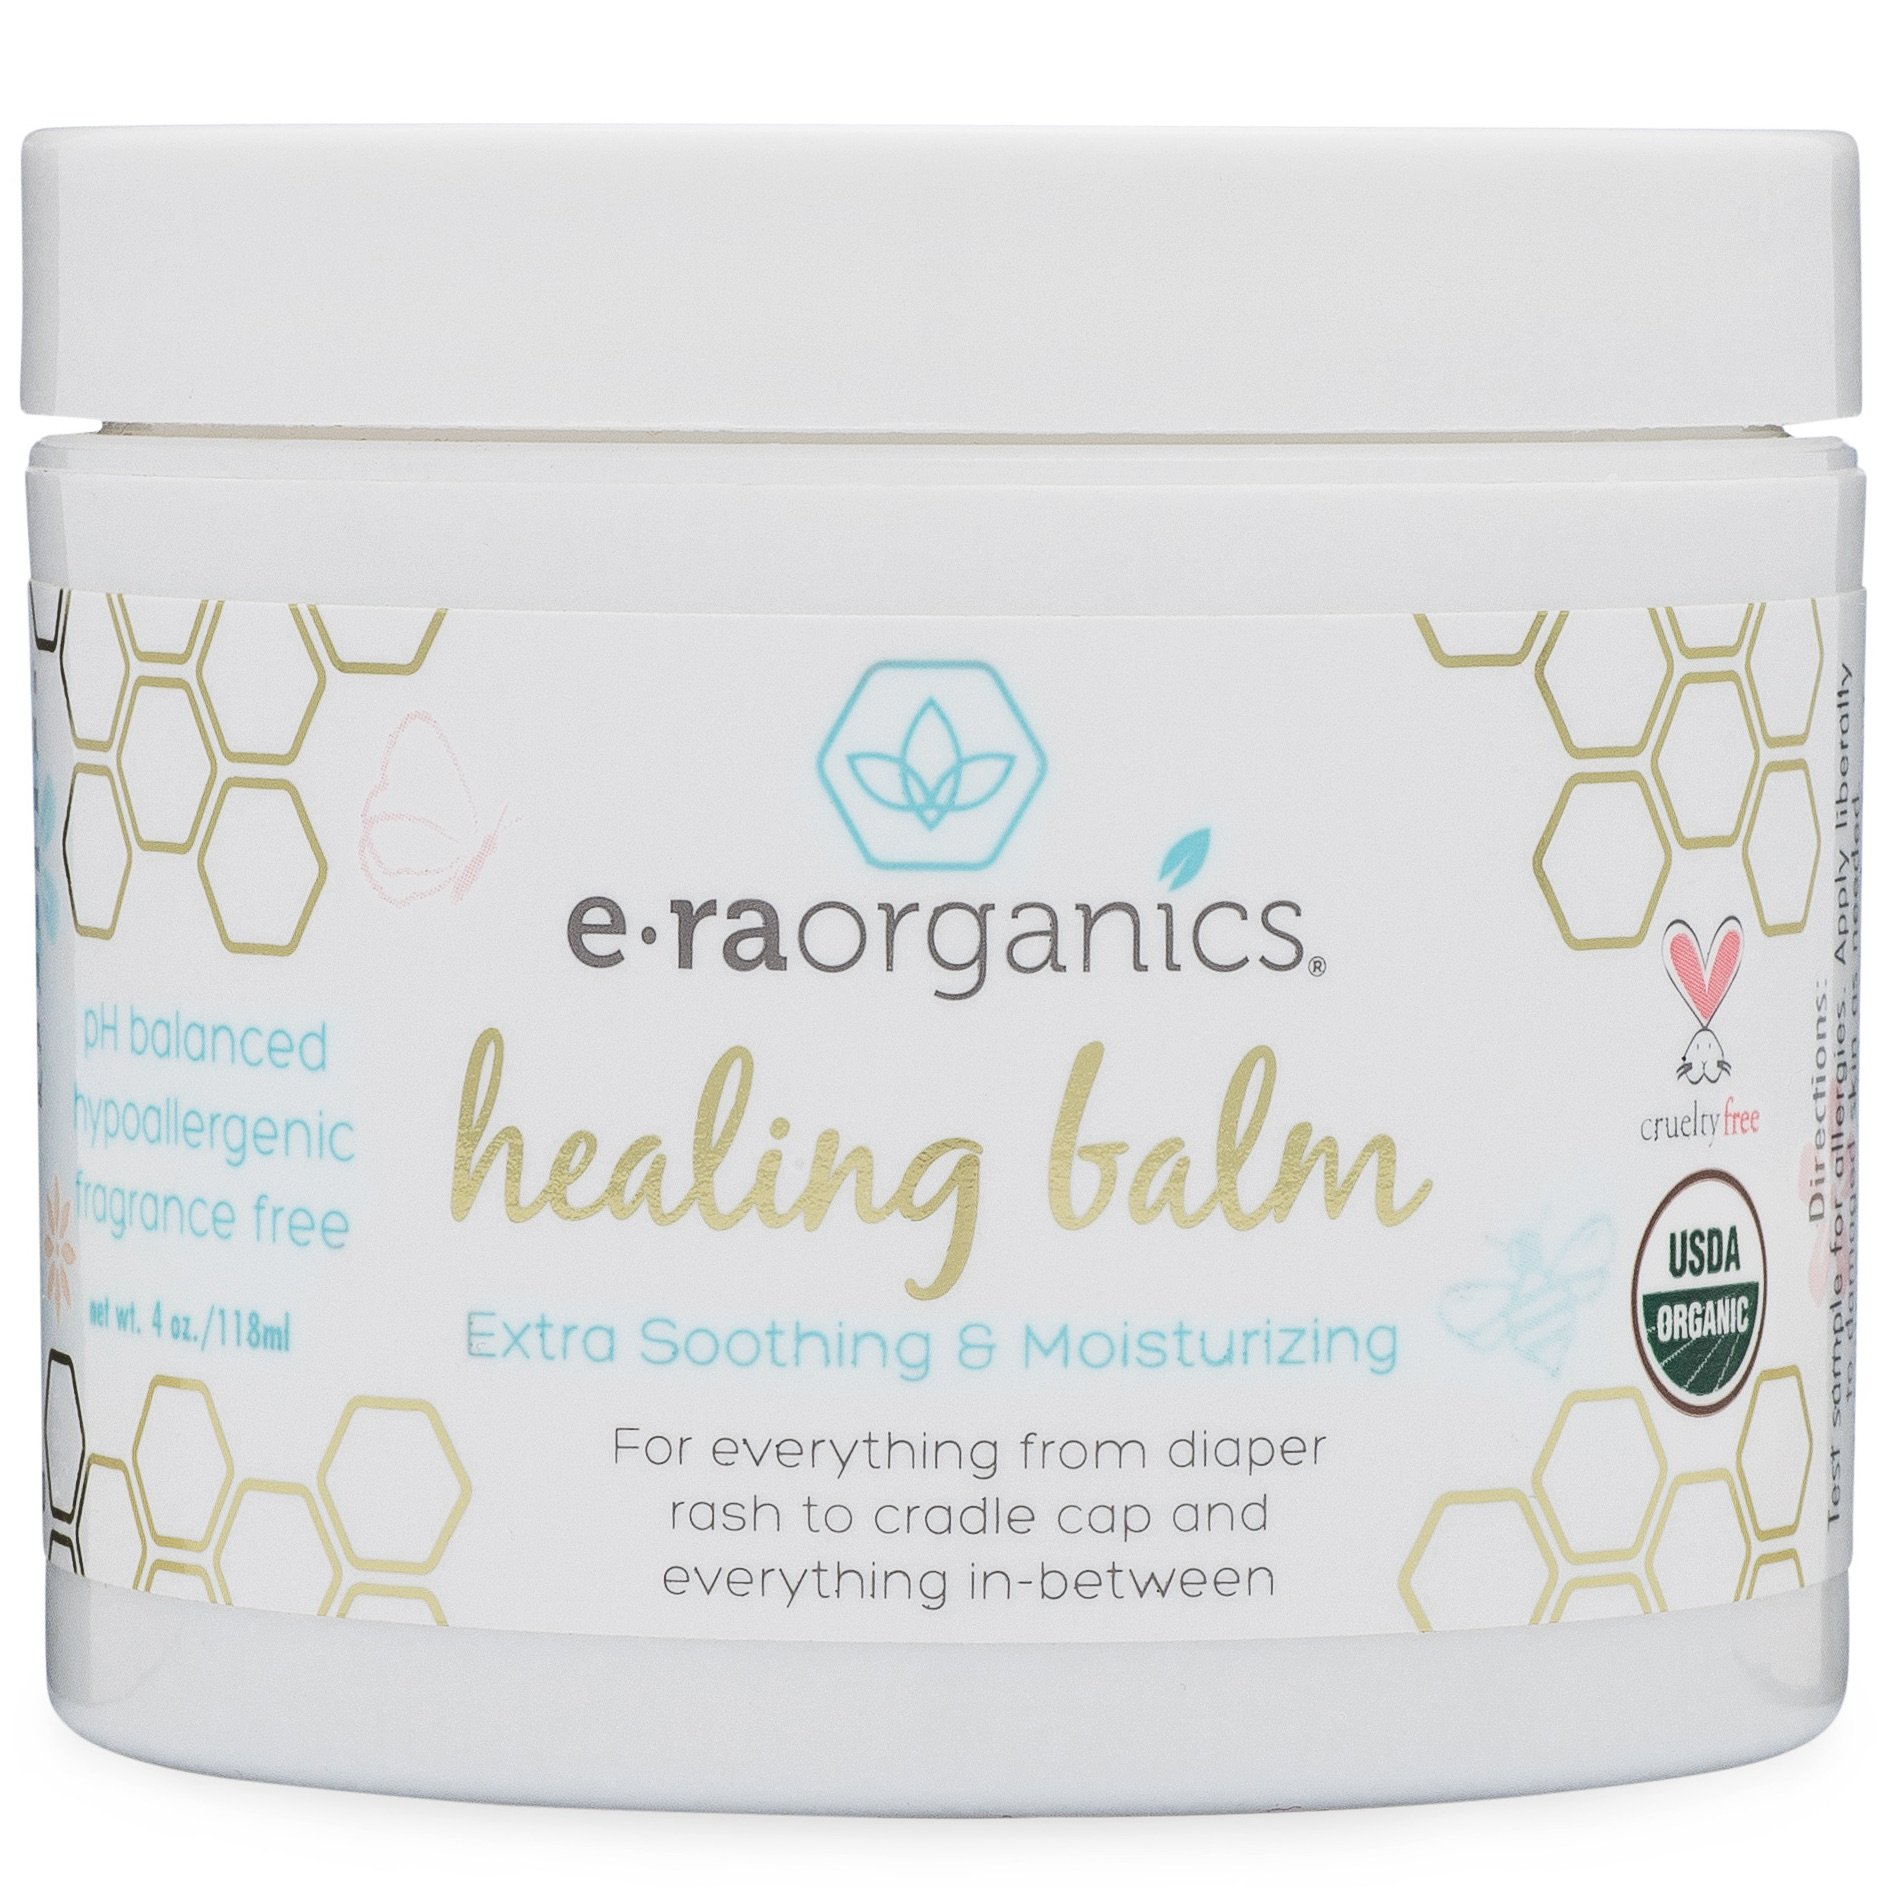 Healing Ointment for Babies 4oz. USDA Certified Organic Natural Healing Cream for Baby Eczema, Cradle Cap (Infant Seborrheic Dermatitis), Chapped Nose, Rashes, Hives & More